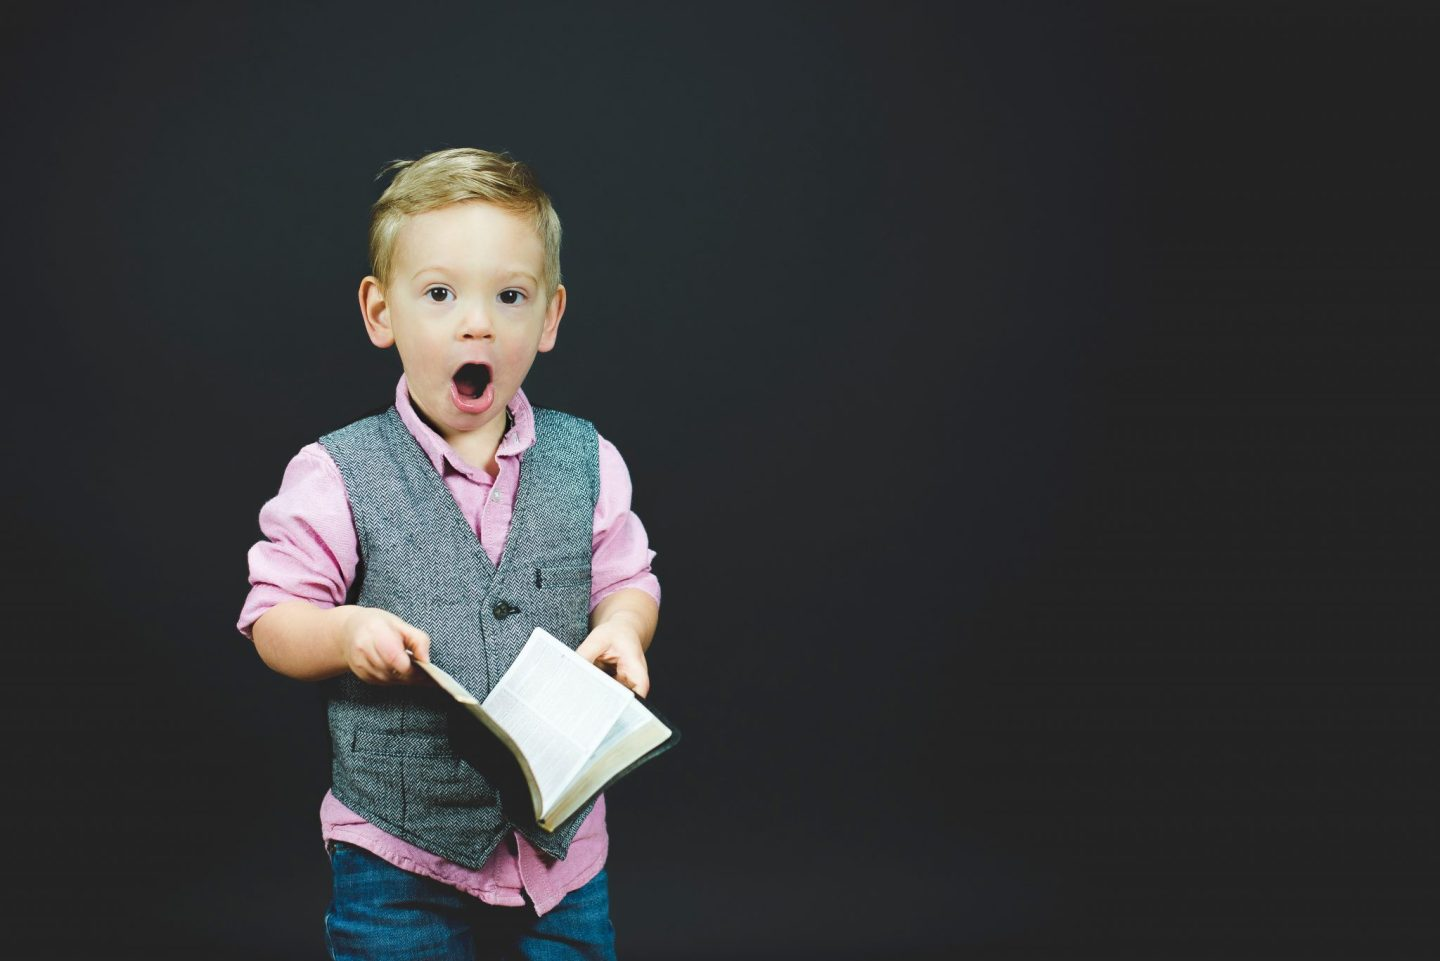 Boy wearing a pink shirt and grey waistcoat, holding a book with a shocked expression. For a blog post on balancing school and home life at https://lukeosaurusandme.co.uk